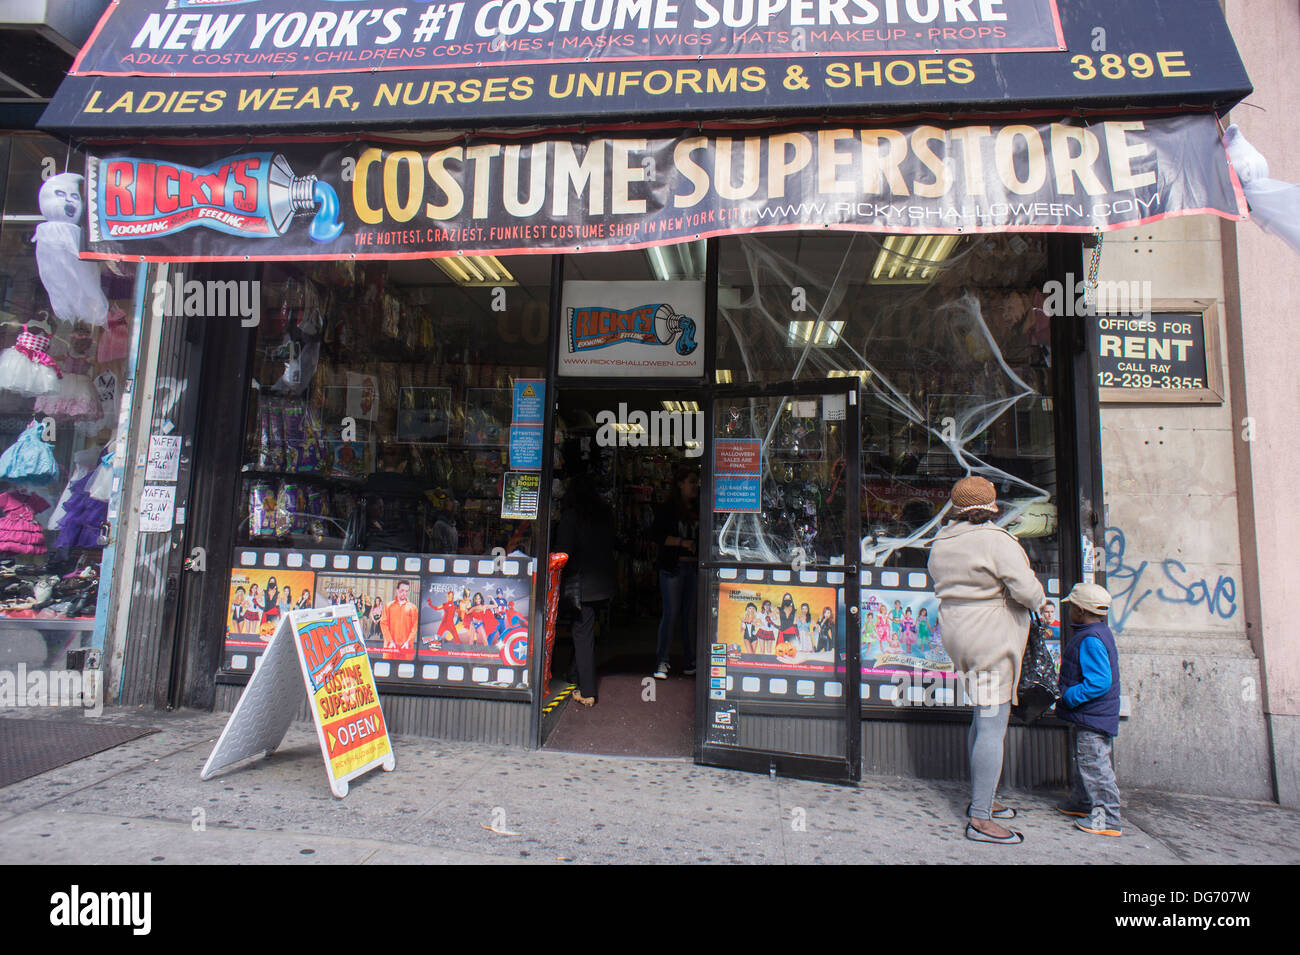 Pop-up Ricky's Halloween Costume Superstore in the Hub in the ...